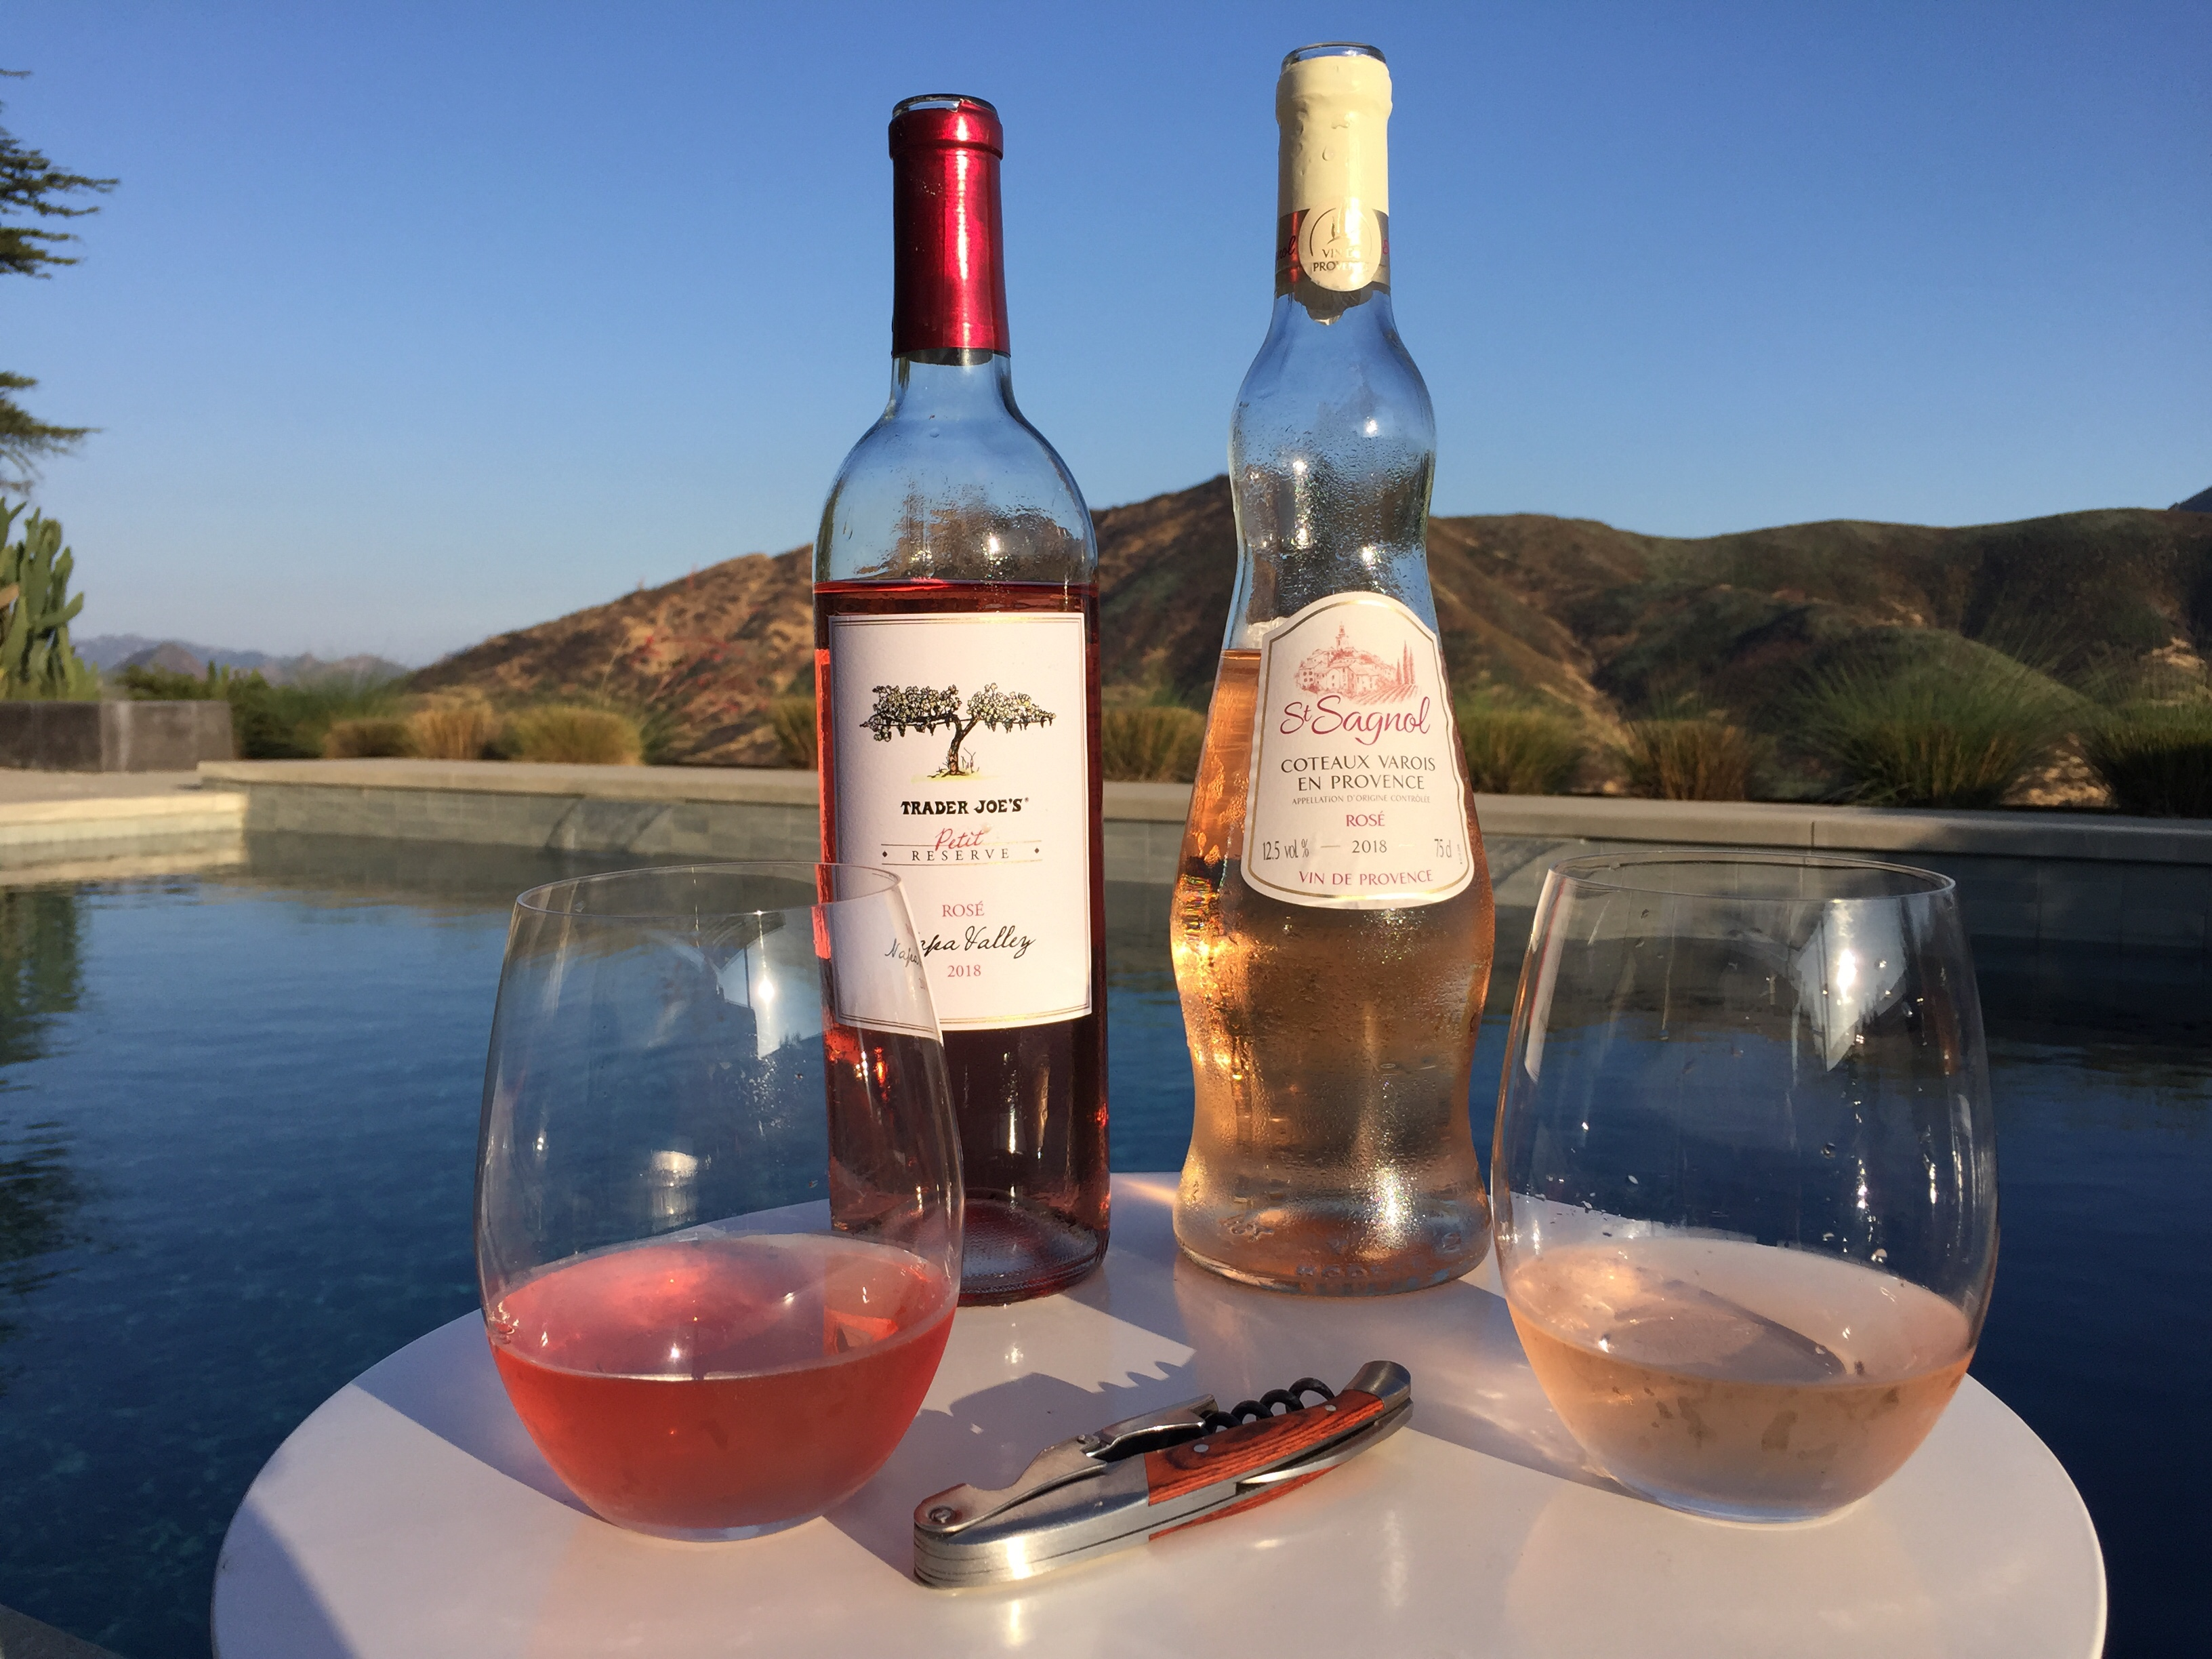 Photo of two bottles and glasses of rose from Trader Joe's, one from California, the other from France